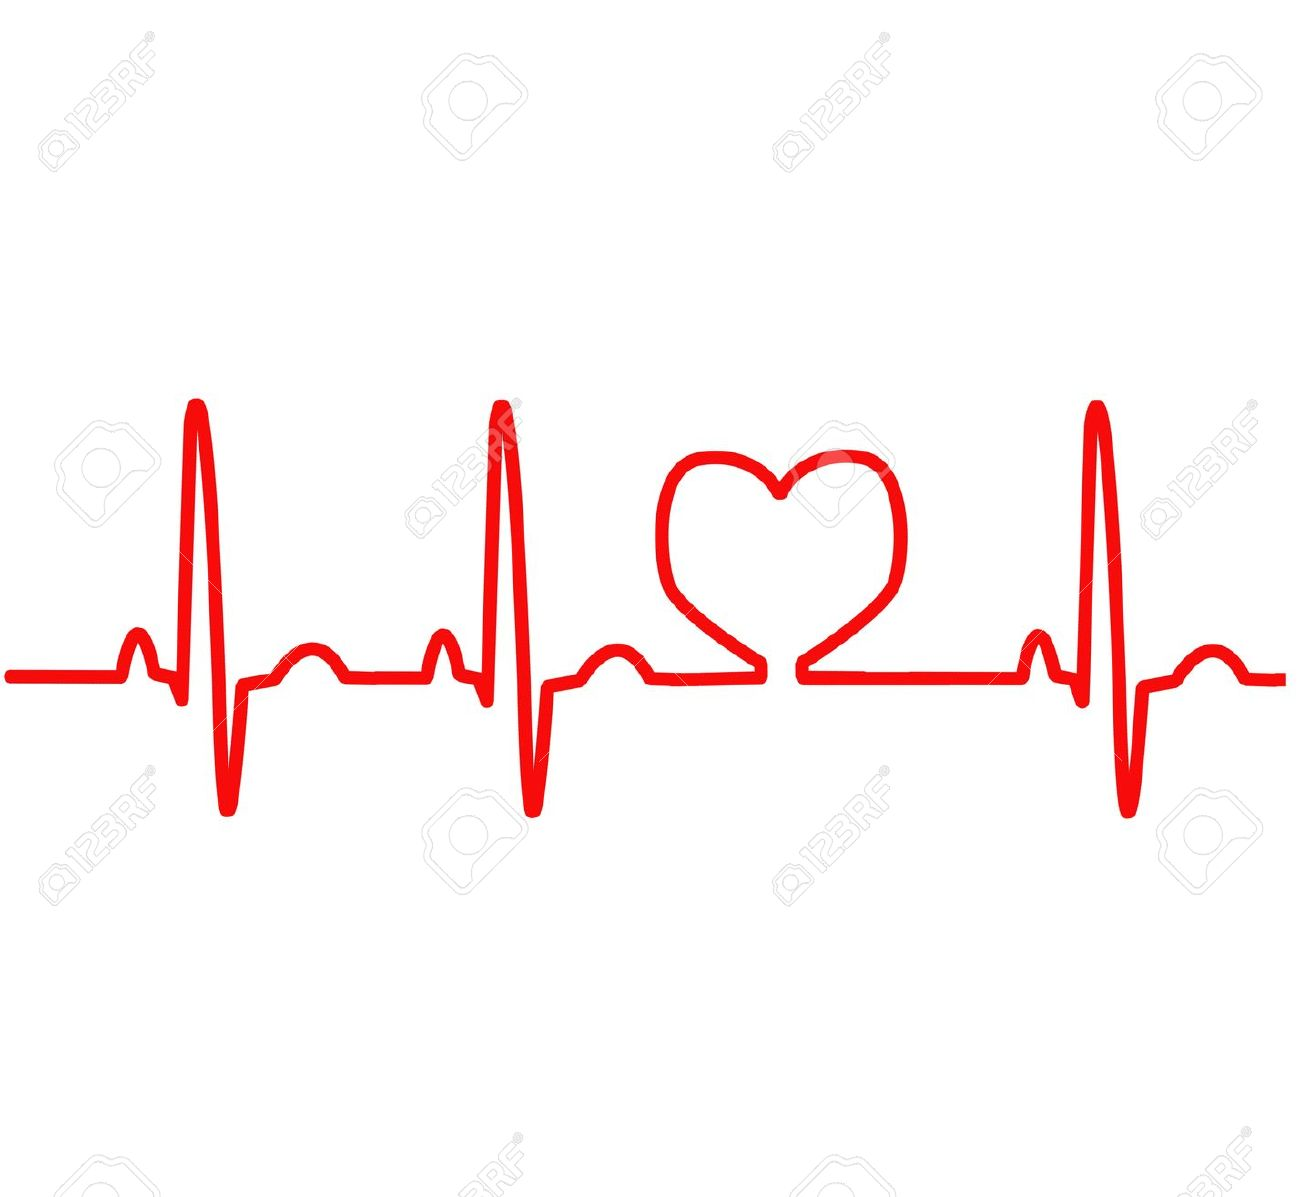 Heart With Ekg Line Clipart.